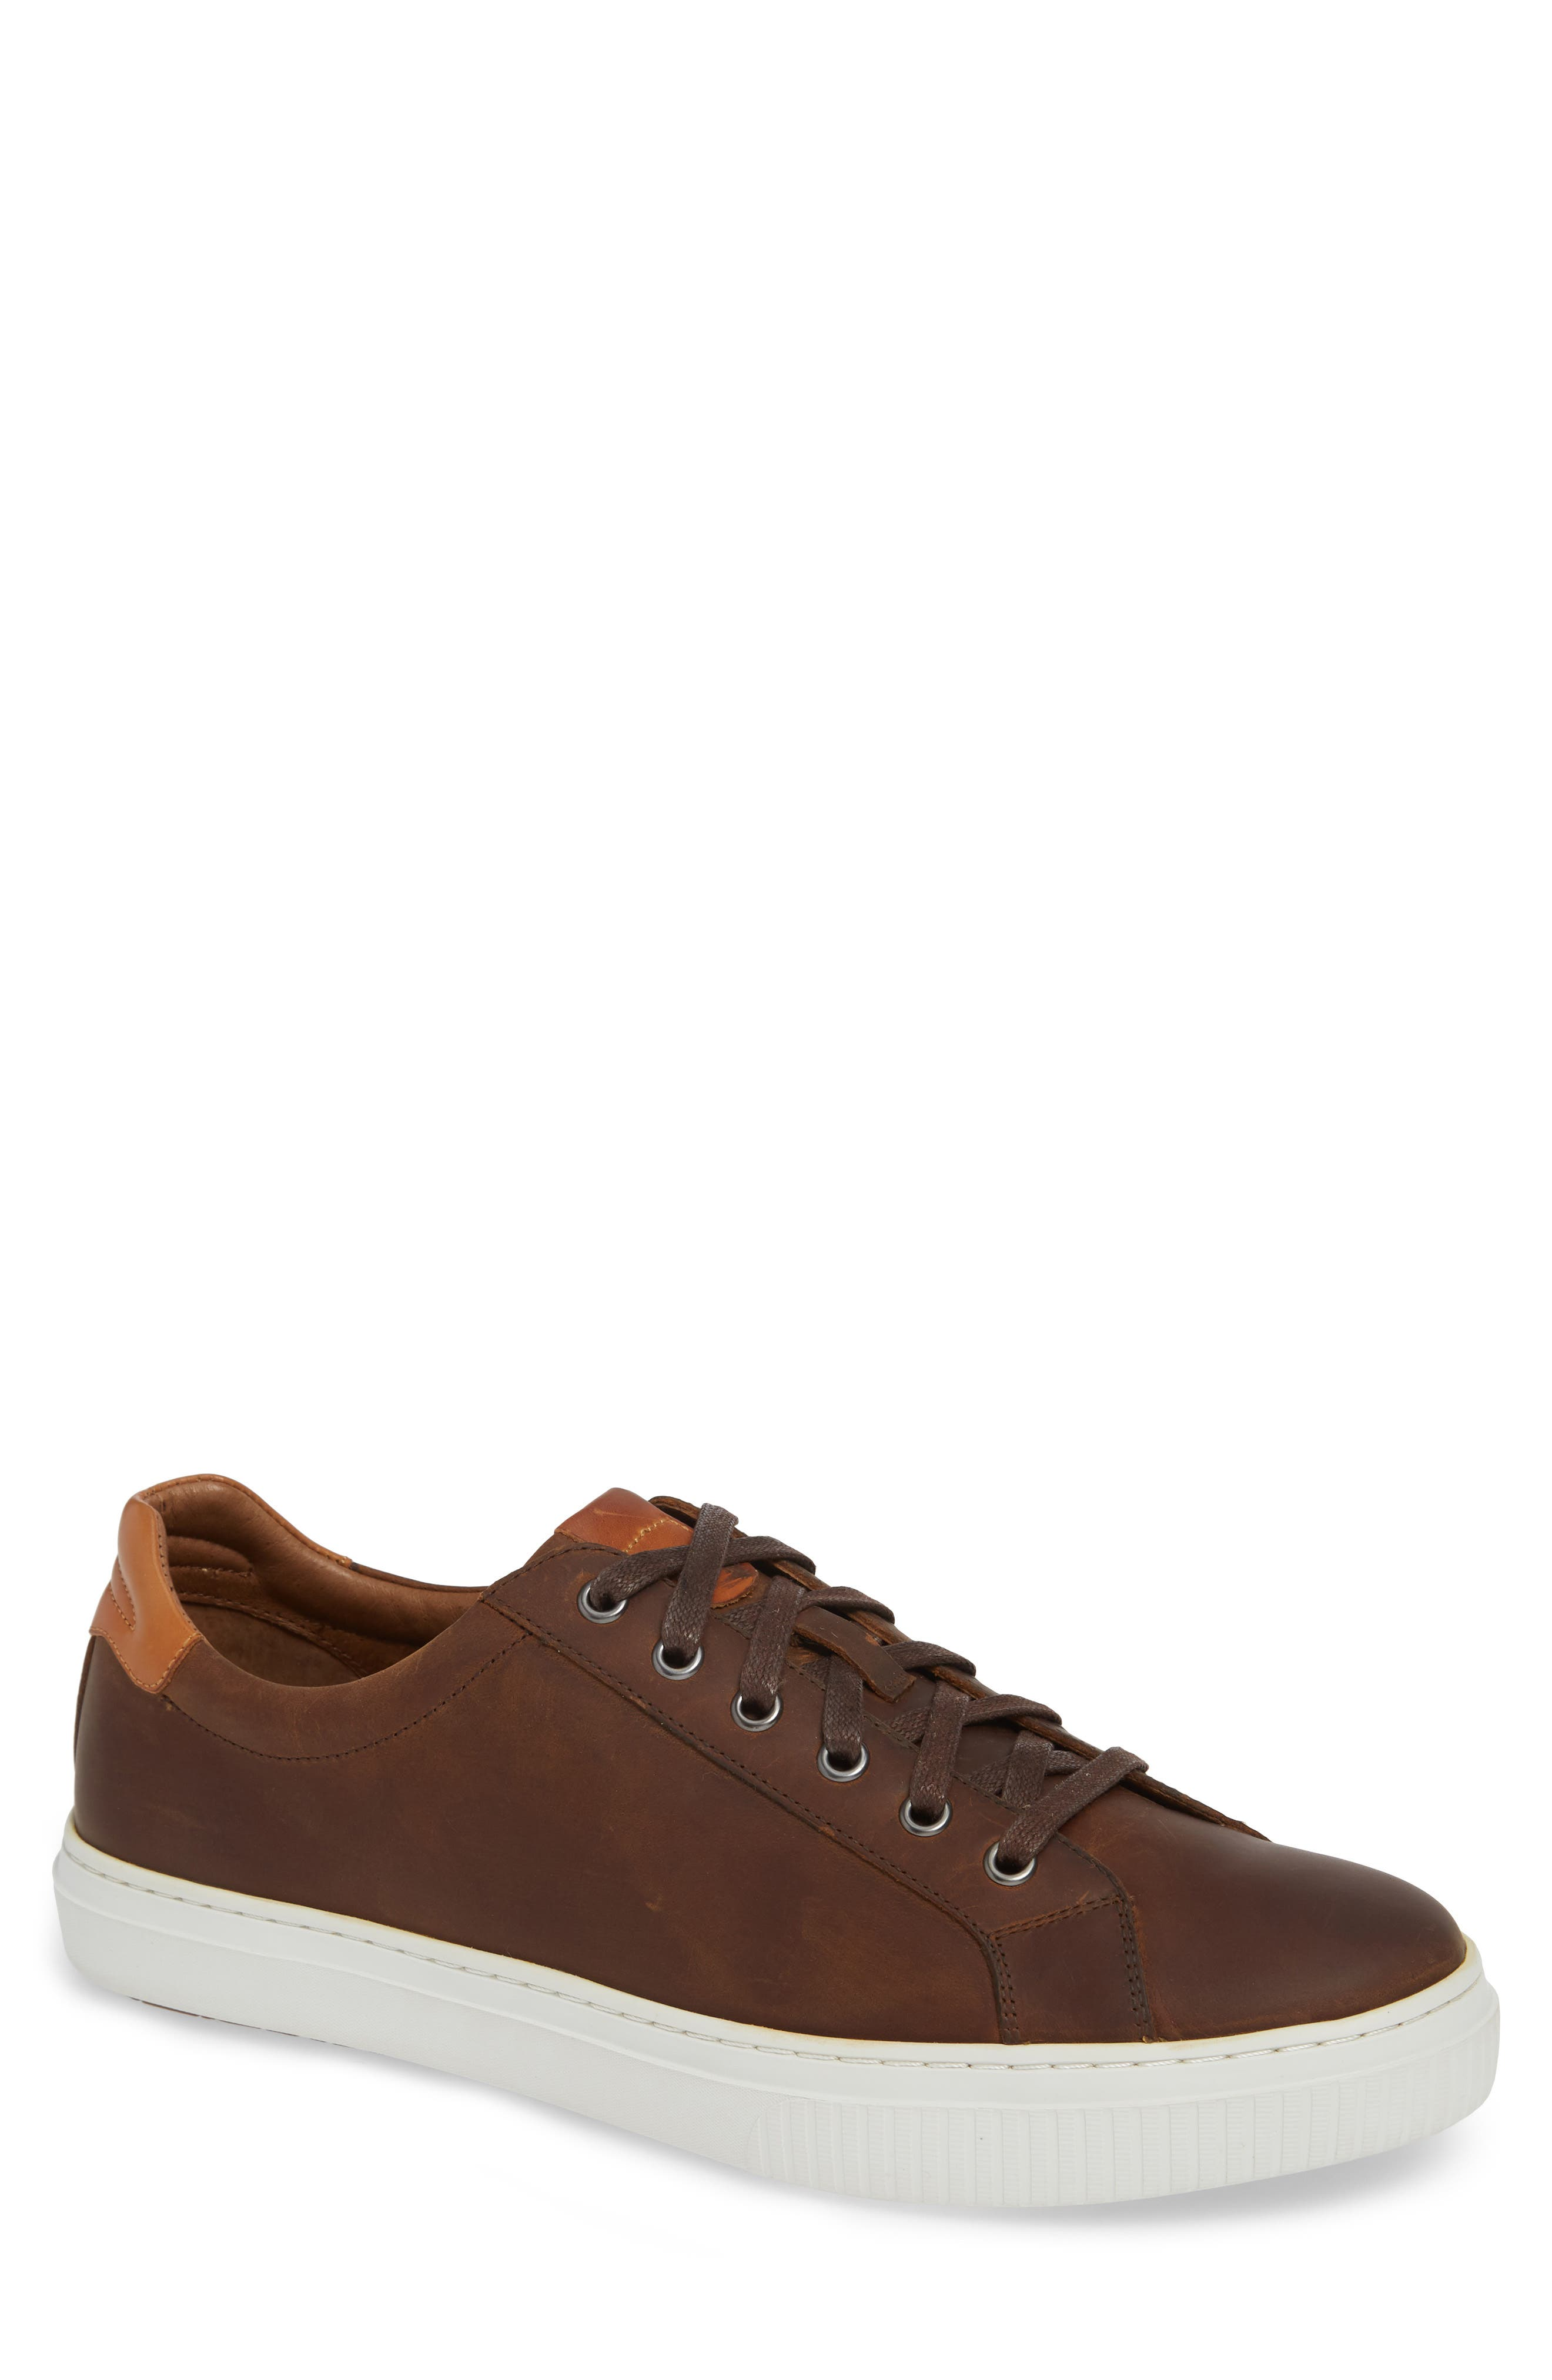 Toliver Low Top Sneaker,                             Main thumbnail 1, color,                             TAN LEATHER